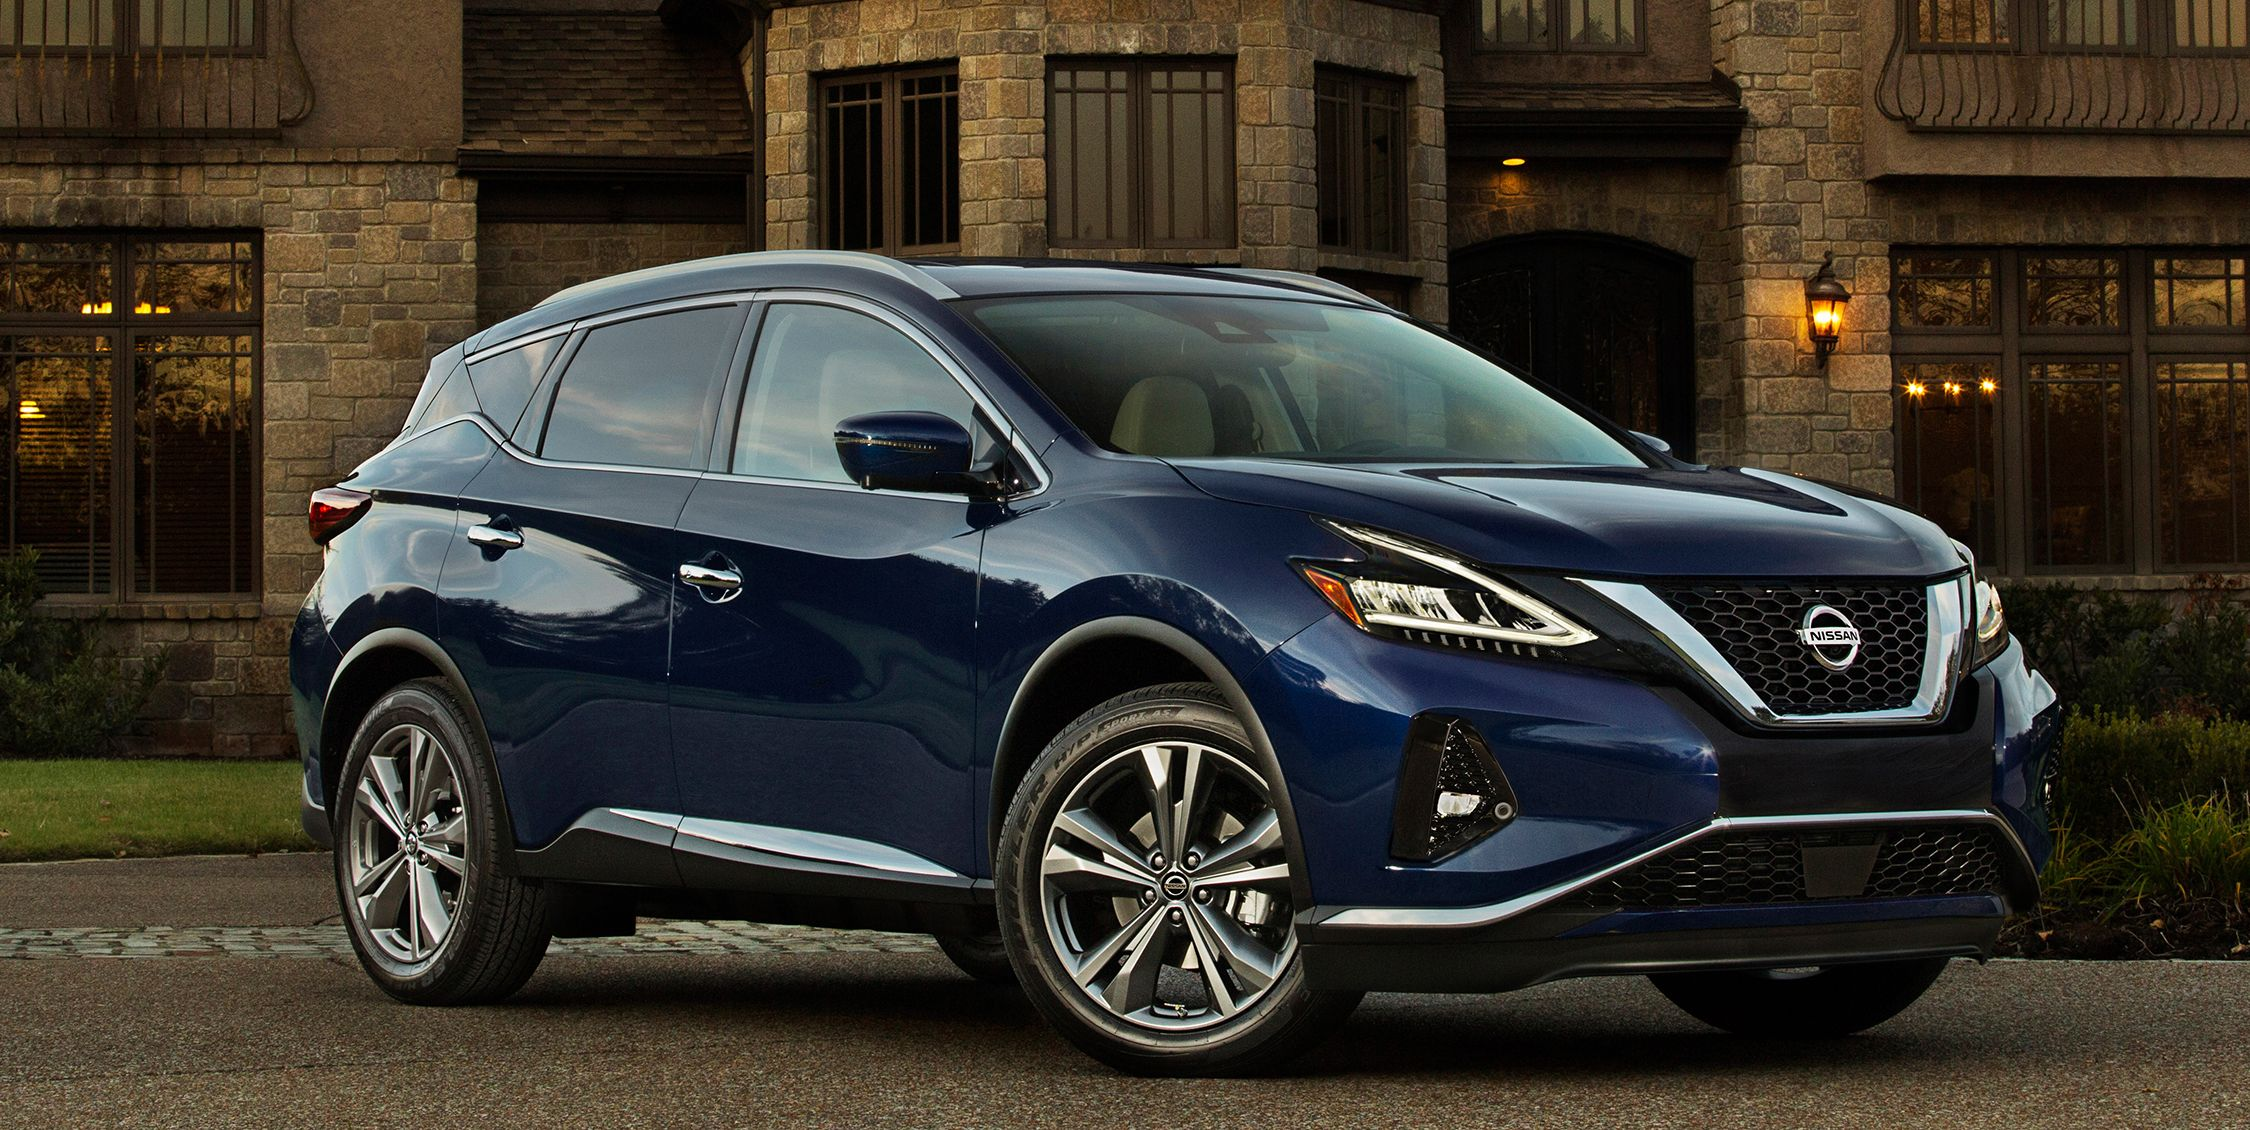 2019 Nissan Murano Becomes More Semi-Luxurious - Details, Specs